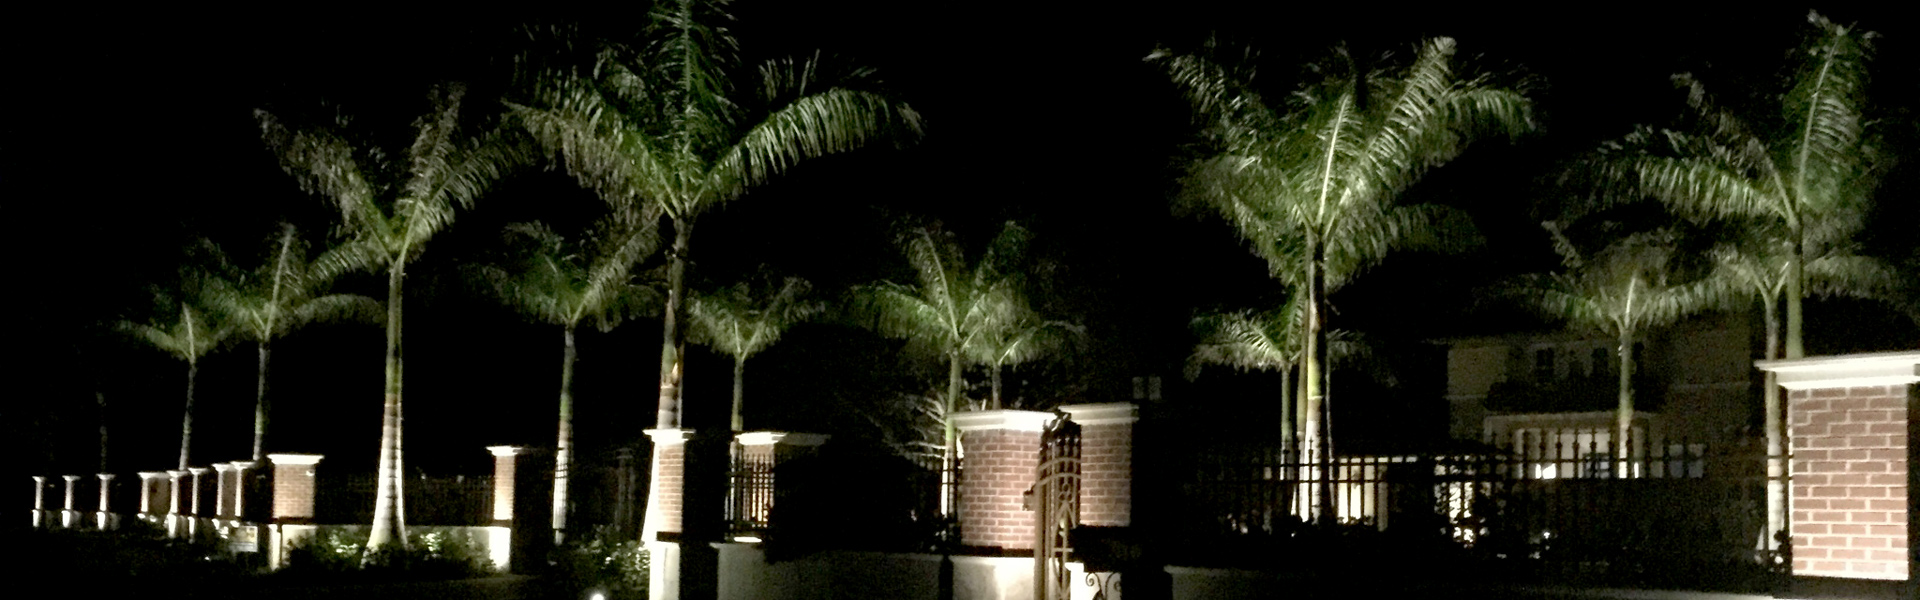 led-landscape-wall-lighting